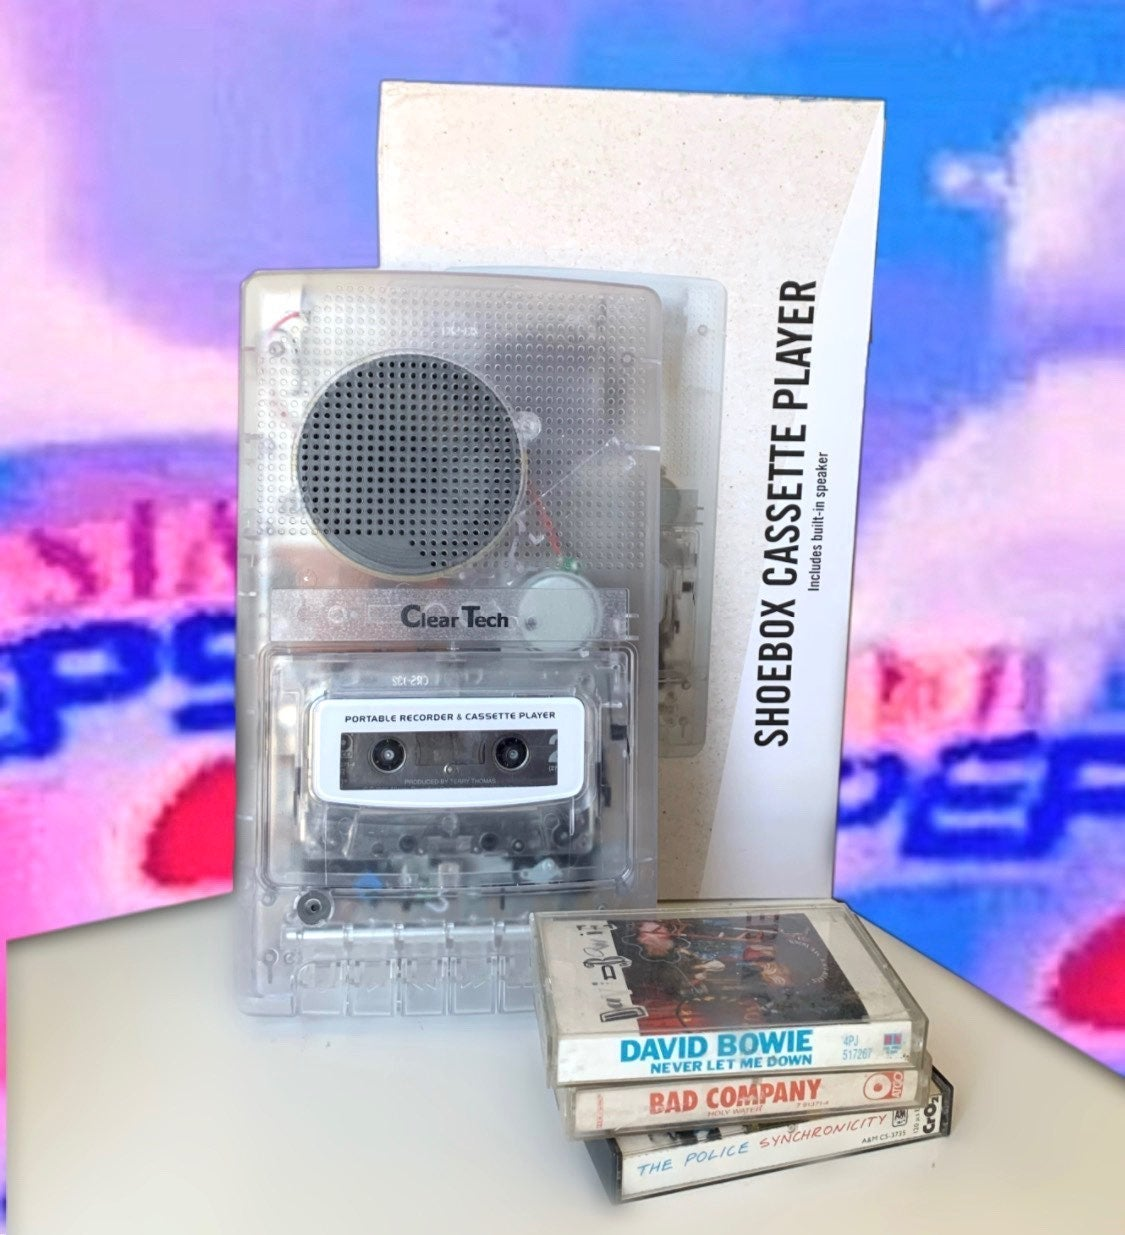 Clear tech Cassette tape Player